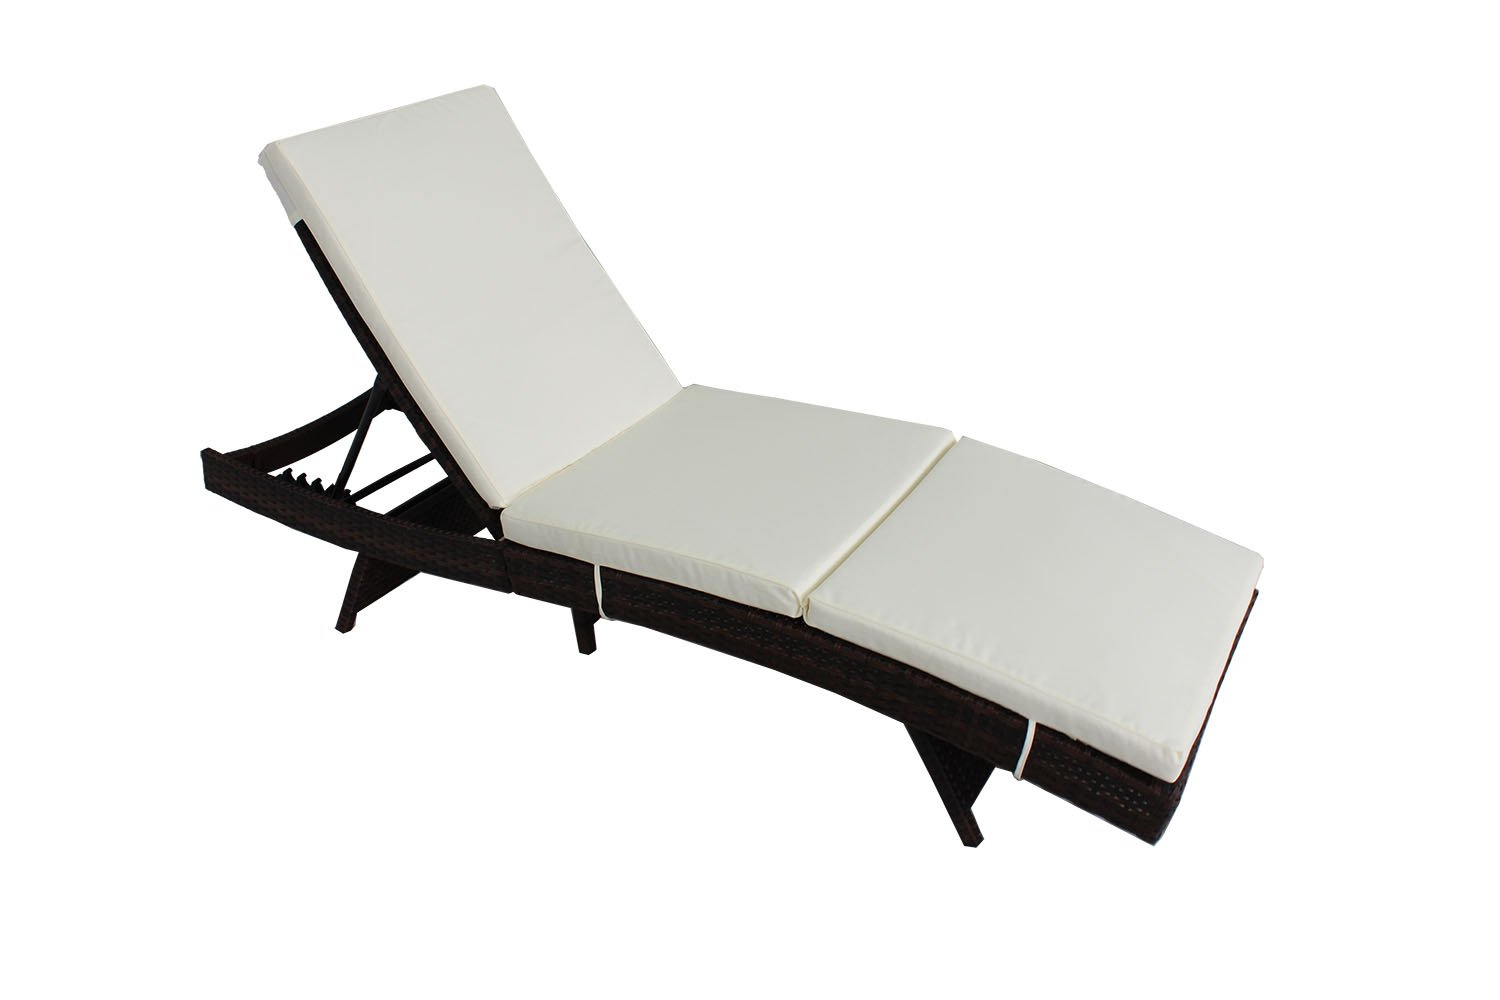 Outime Outdoor Patio Black Rattan Wicker Adjustable Cushioned Chaise Lounge Chair(Beige Cushion)